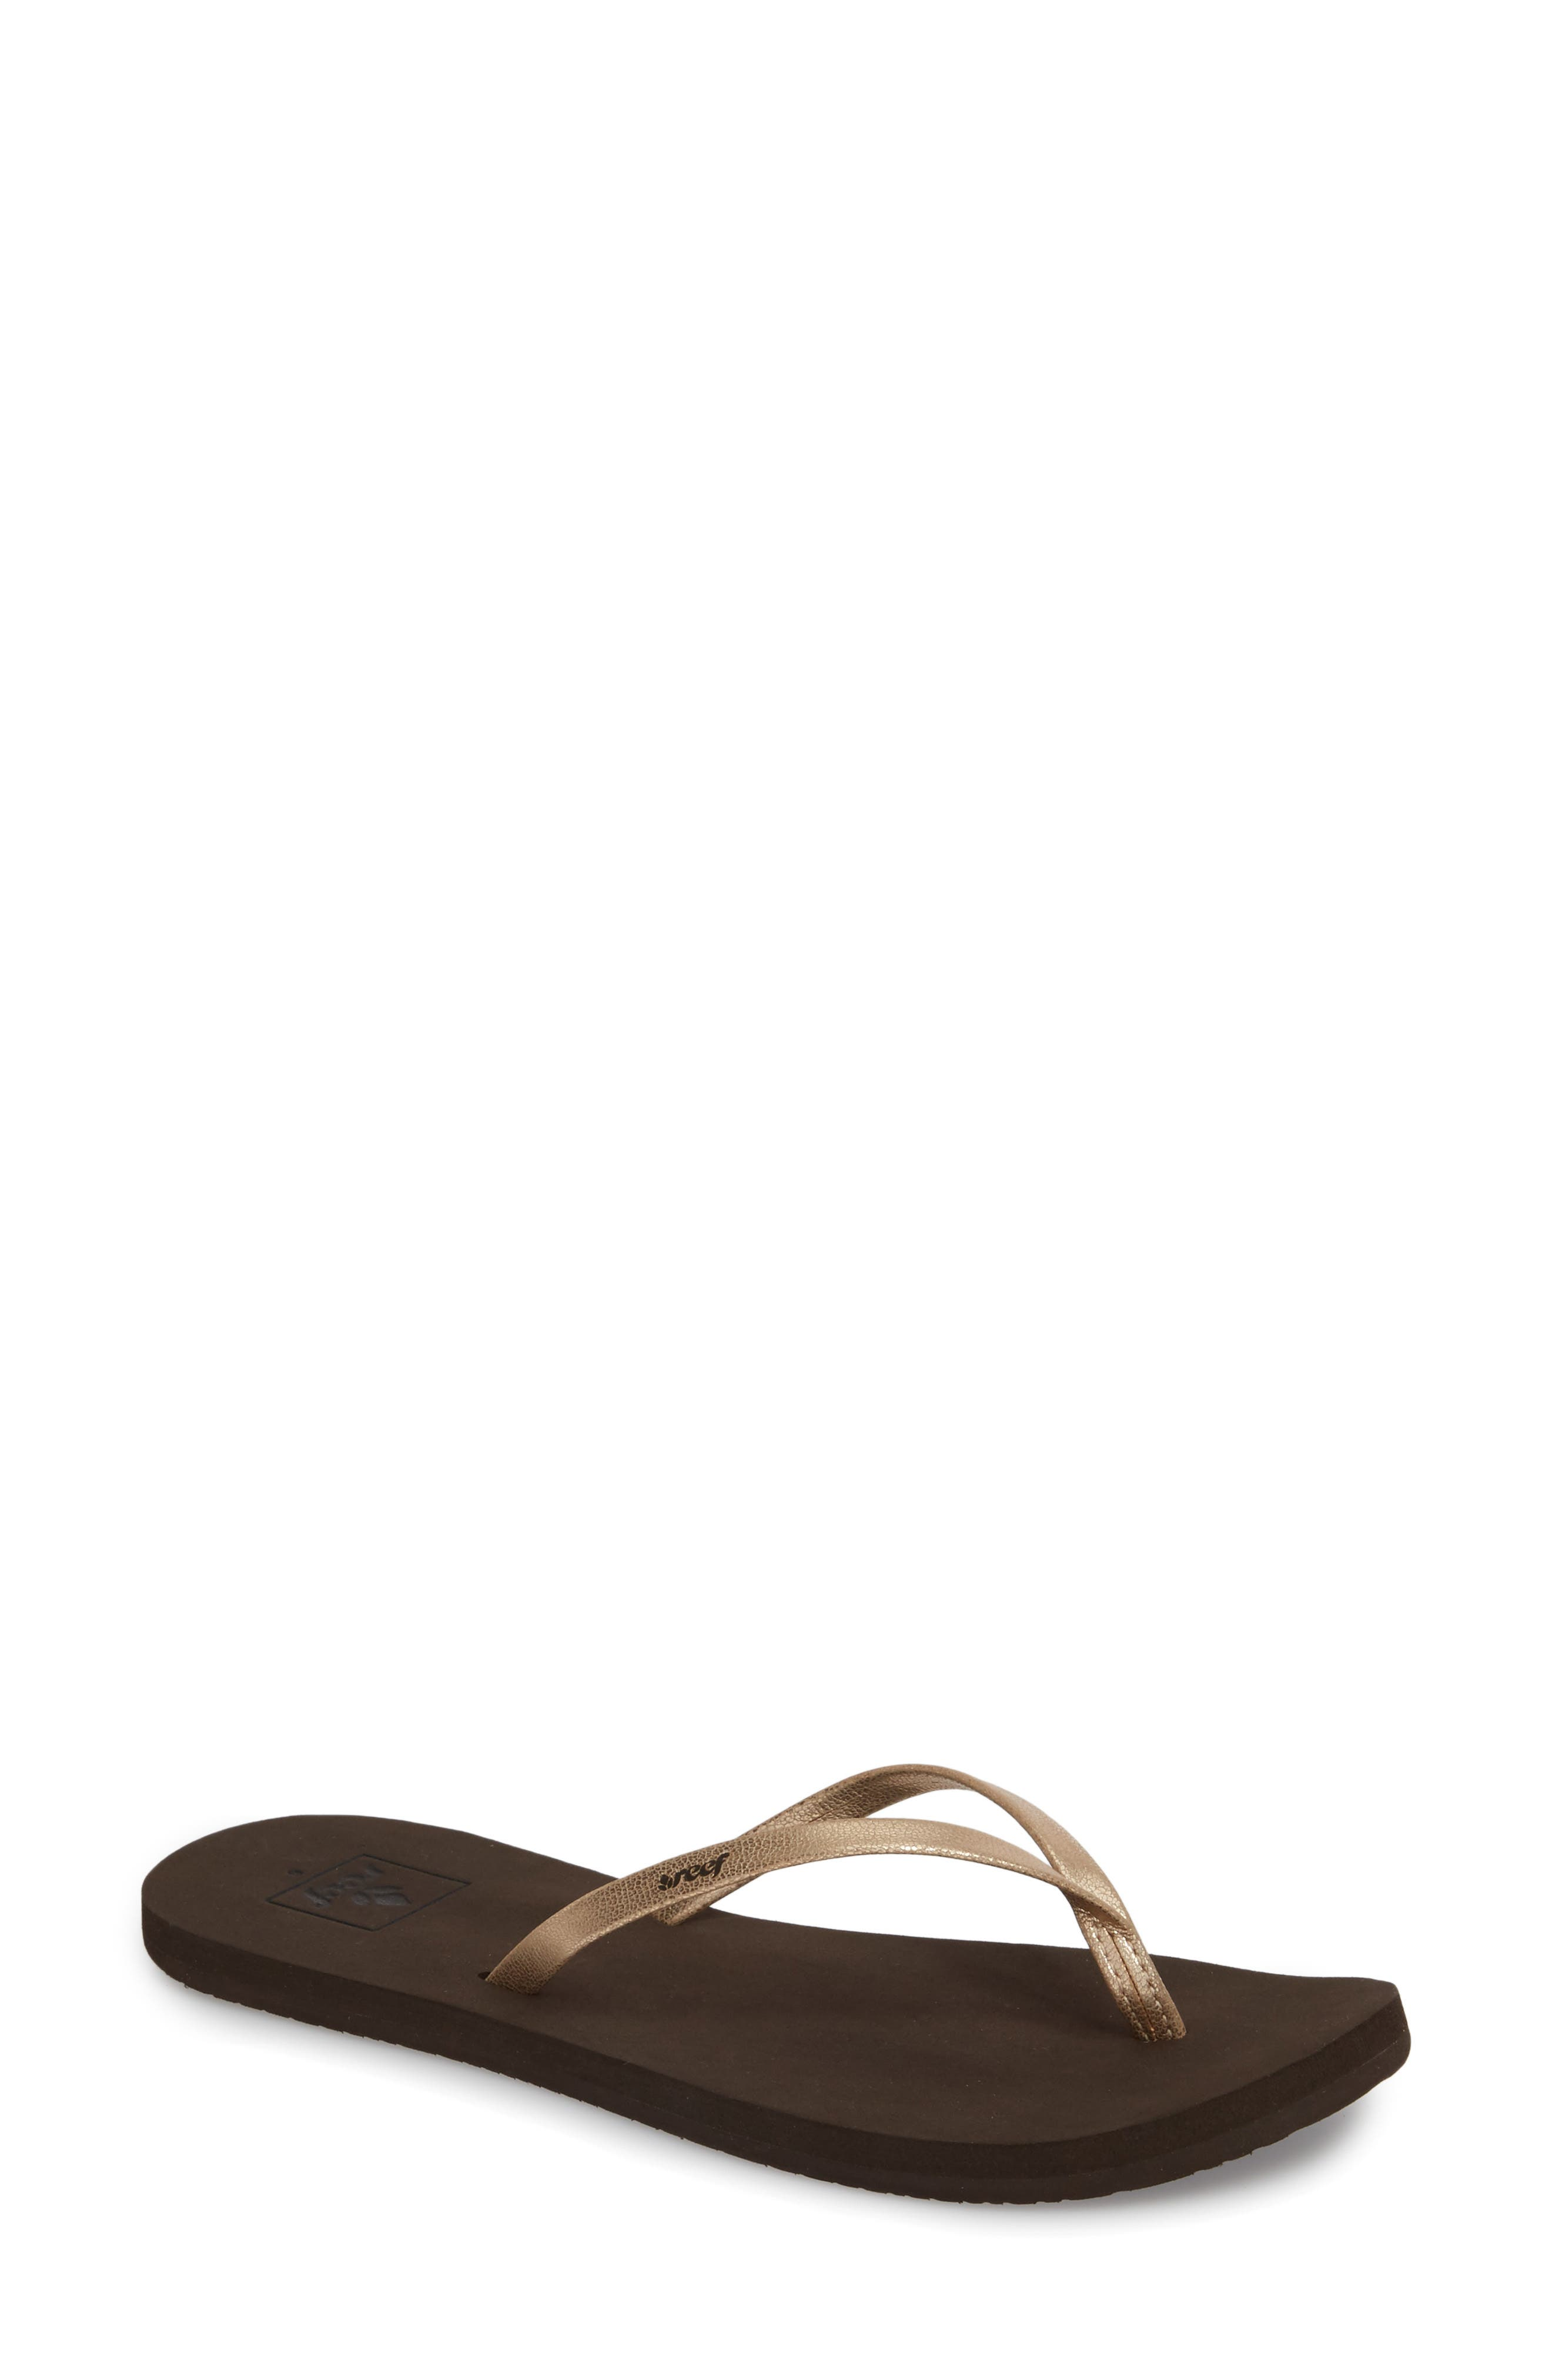 Bliss Nights Flip Flop,                             Main thumbnail 1, color,                             Rose Gold